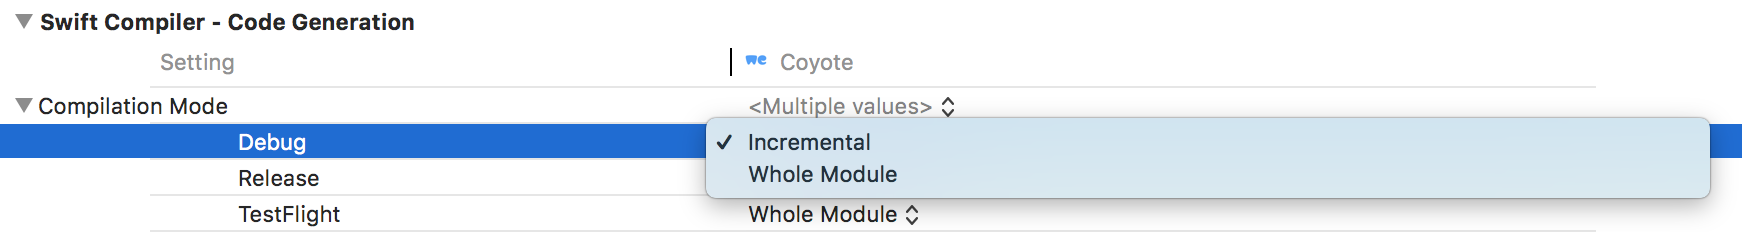 Enabling newly added opt-in features in Xcode 10 - SwiftLee